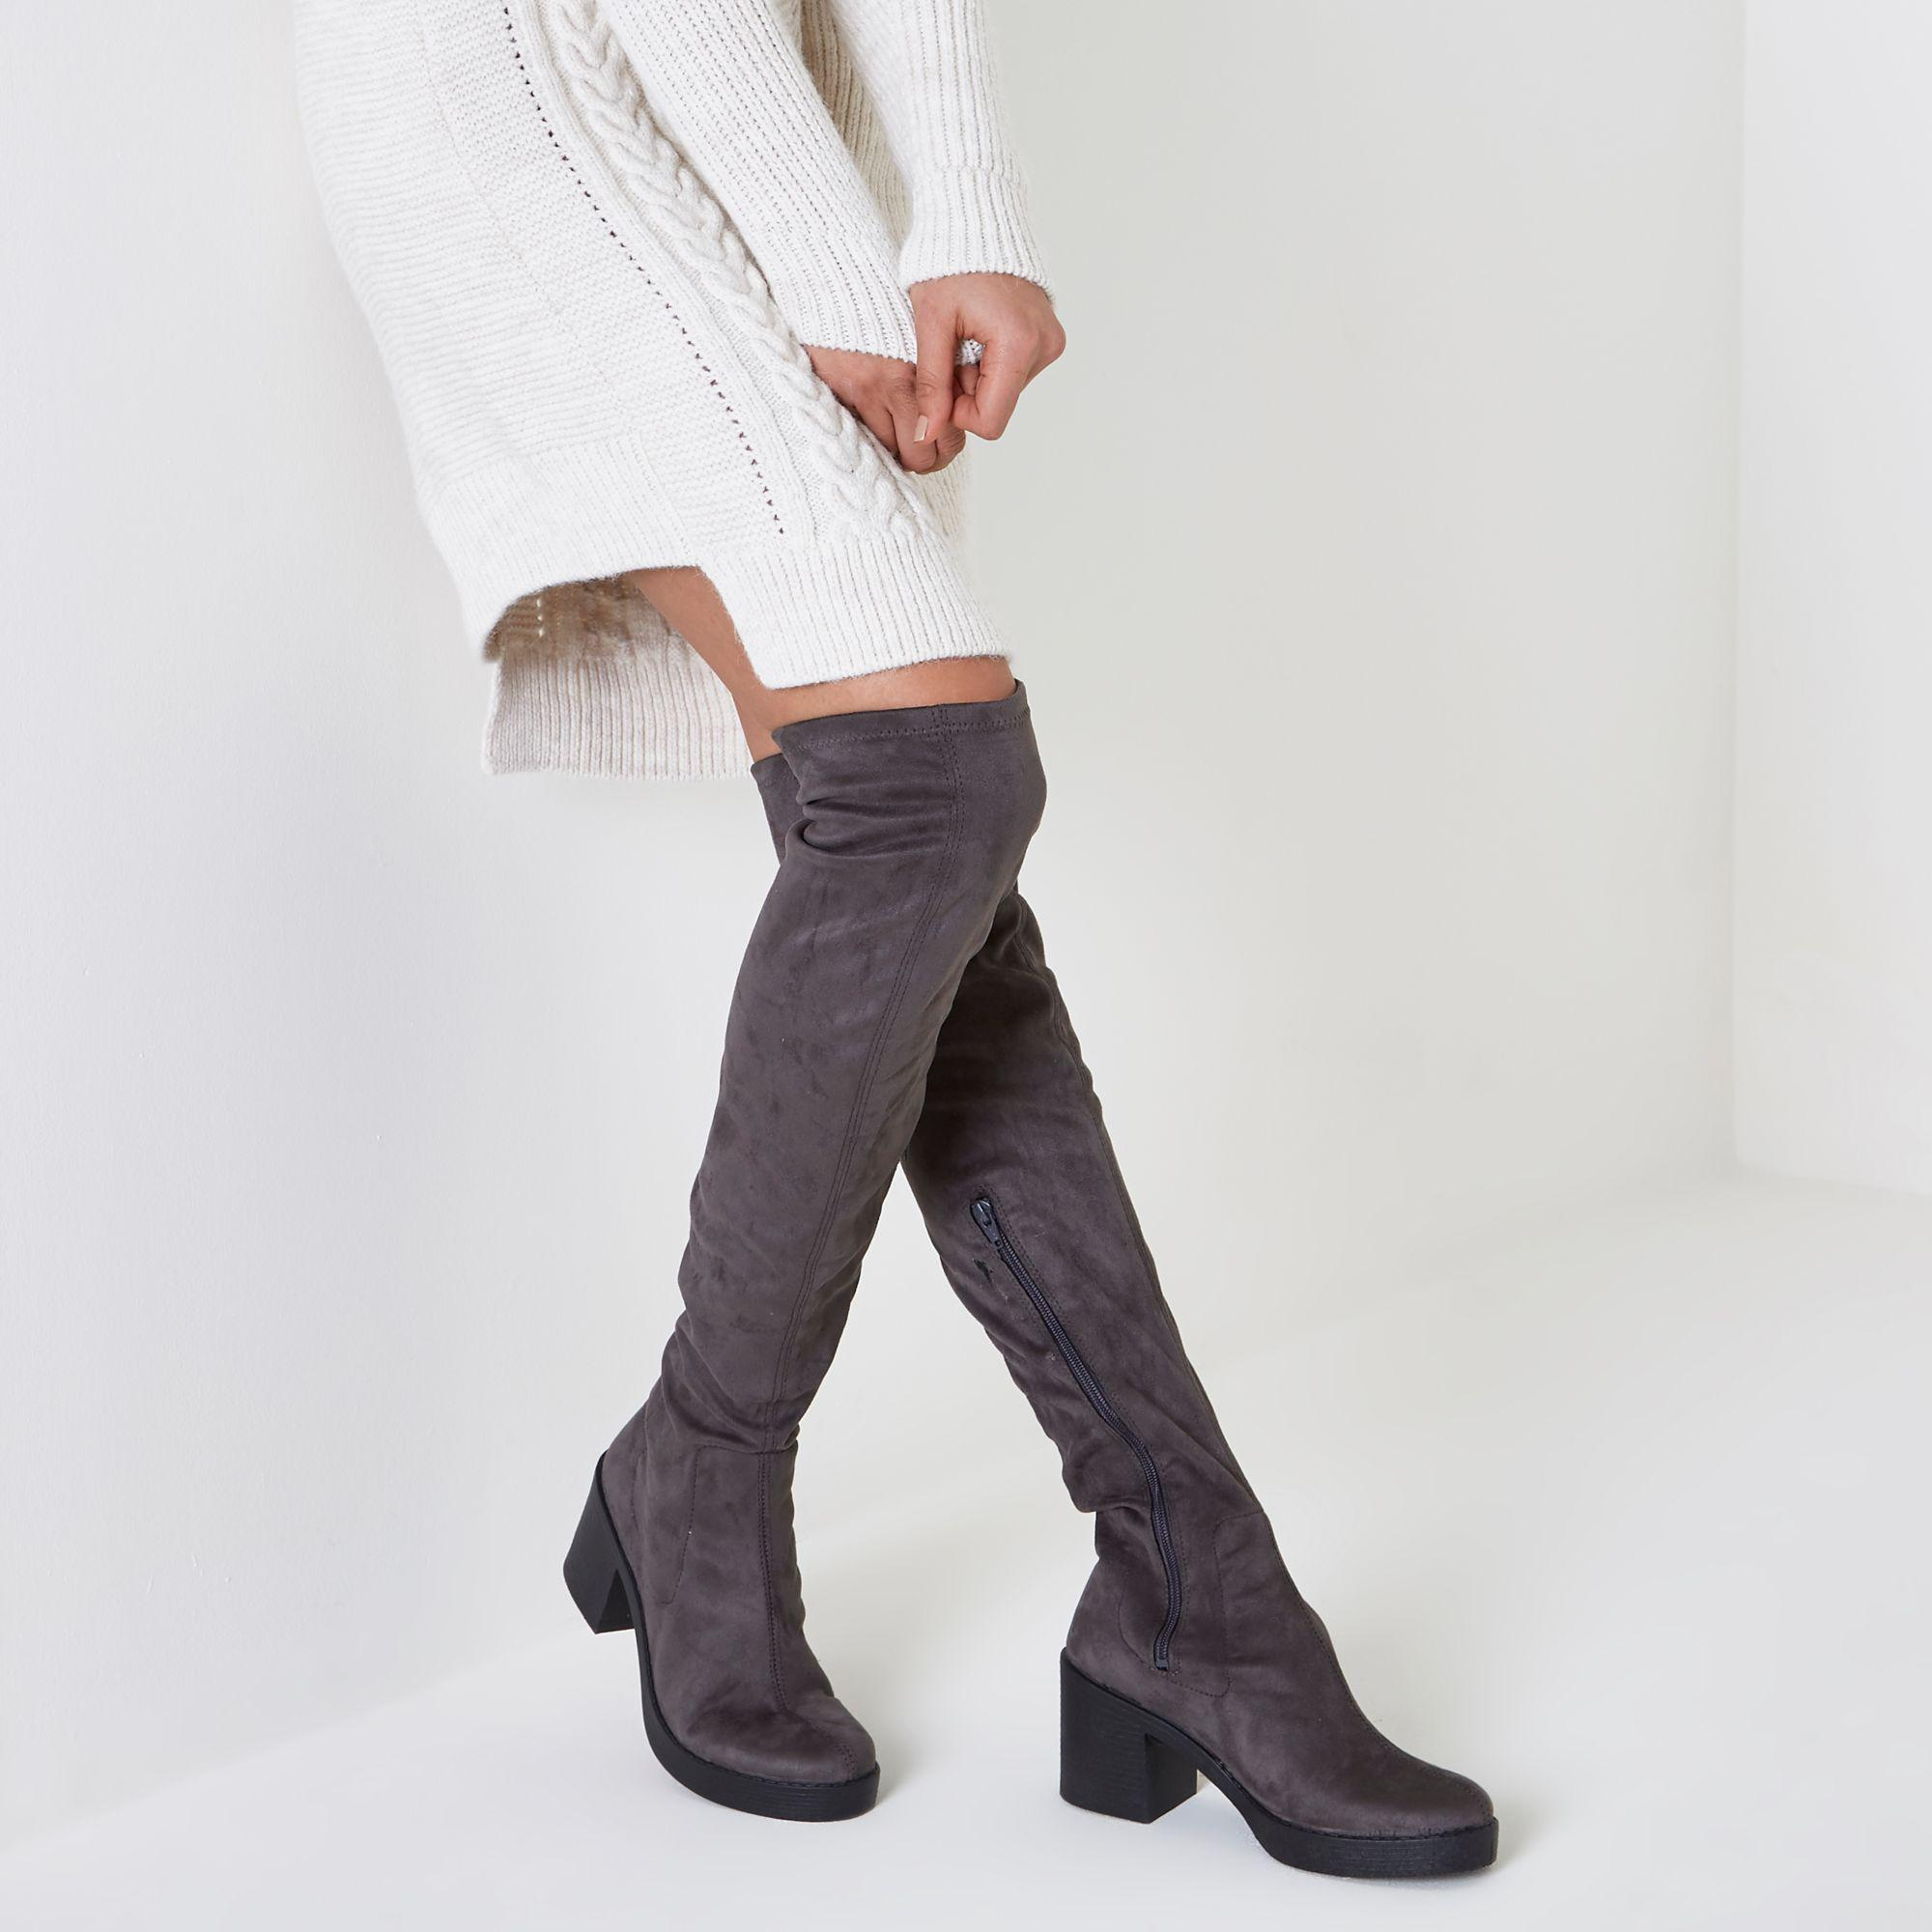 2625ed5a330 Lyst - River Island Chunky Sole Over The Knee Boots in Gray